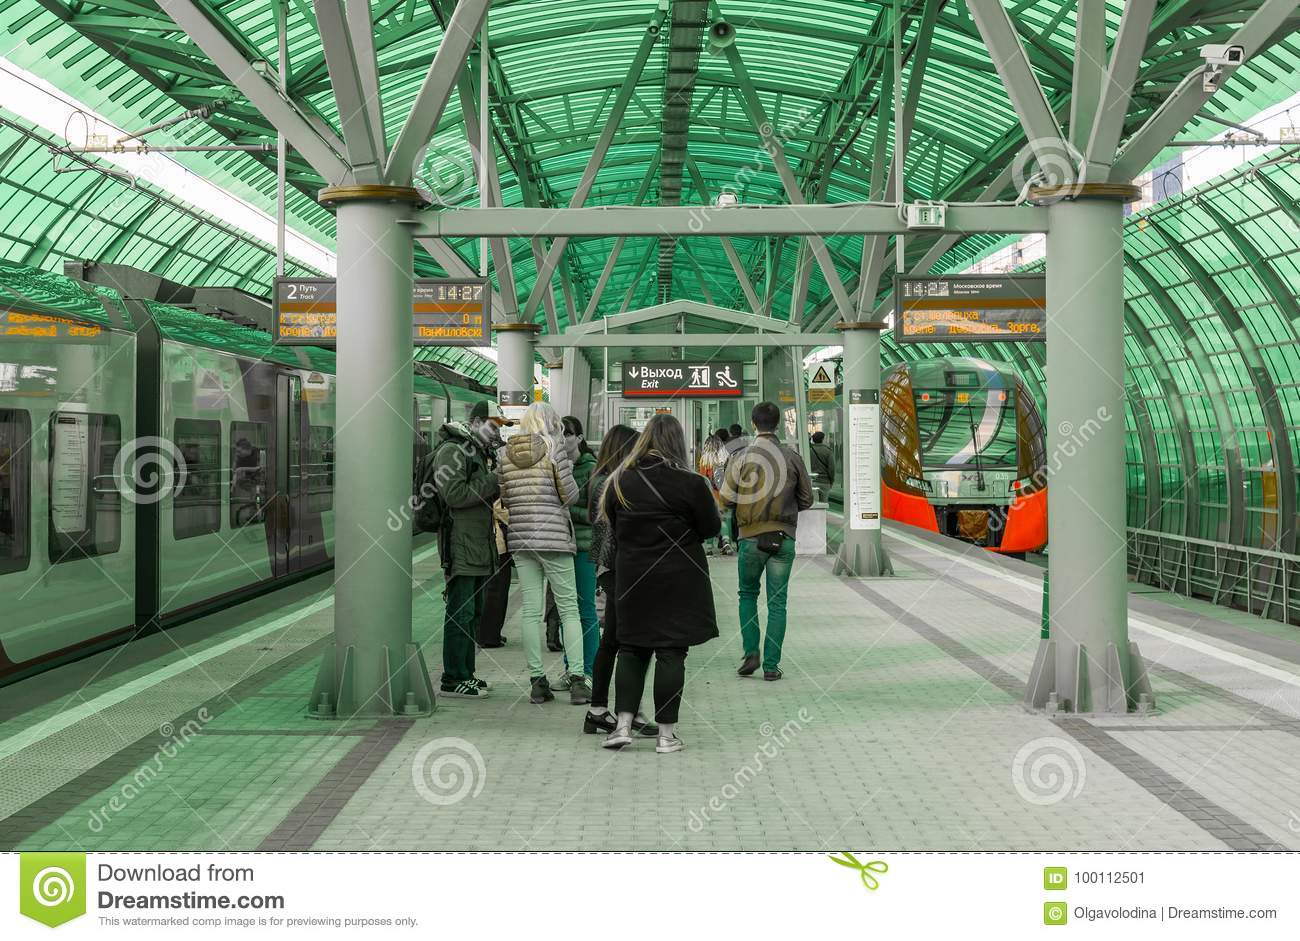 Is there the October station in Moscow 32